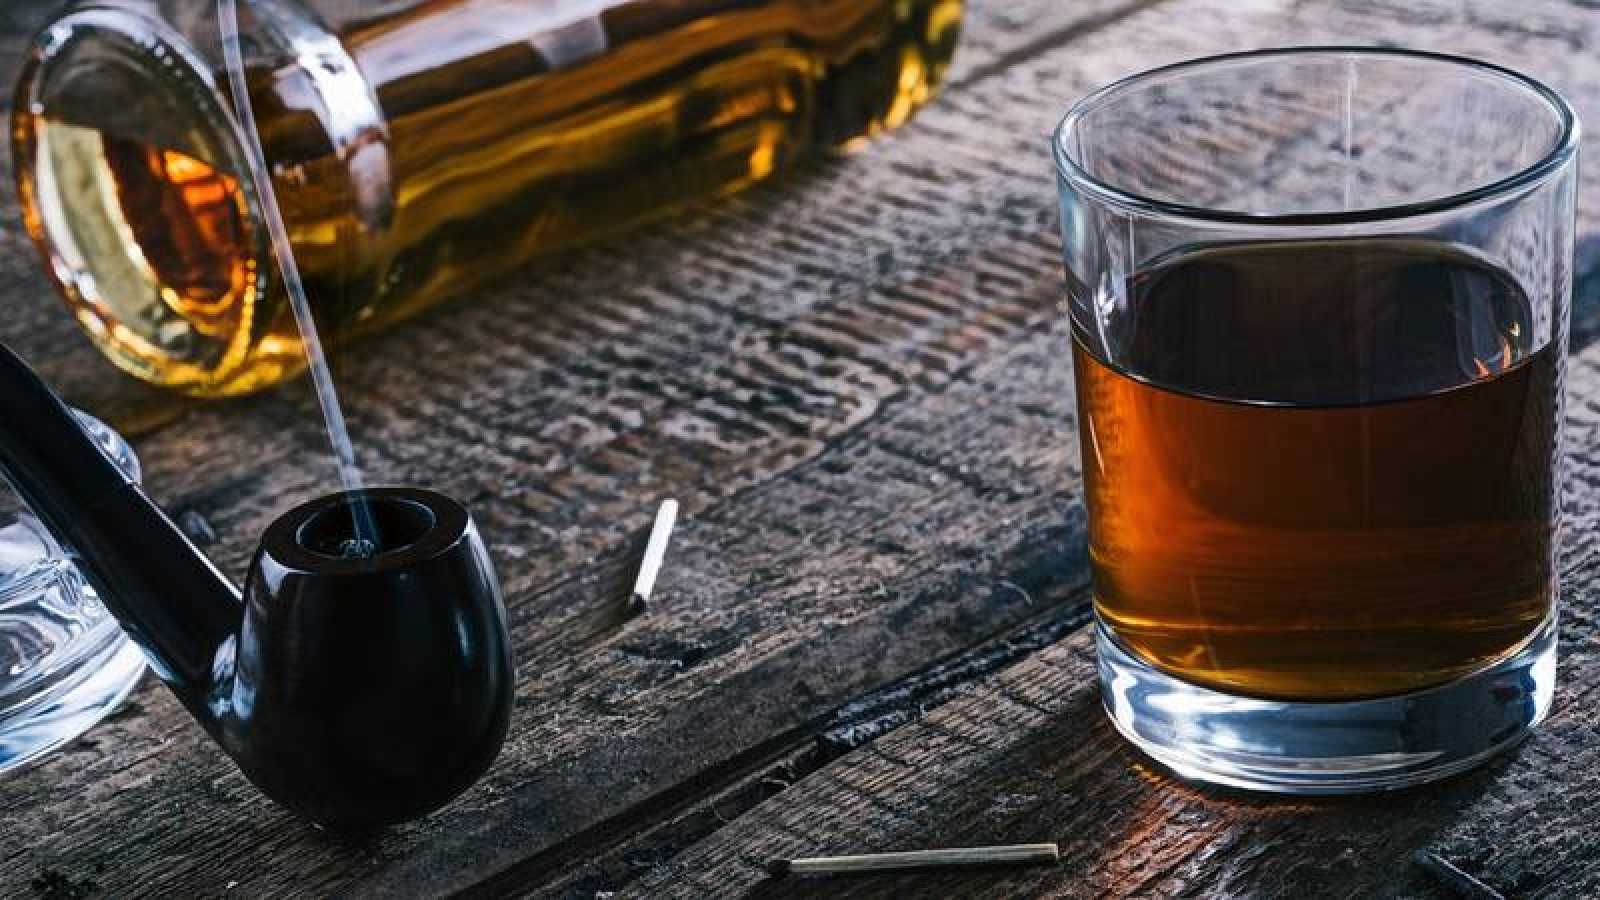 Whisky and smoking pipe